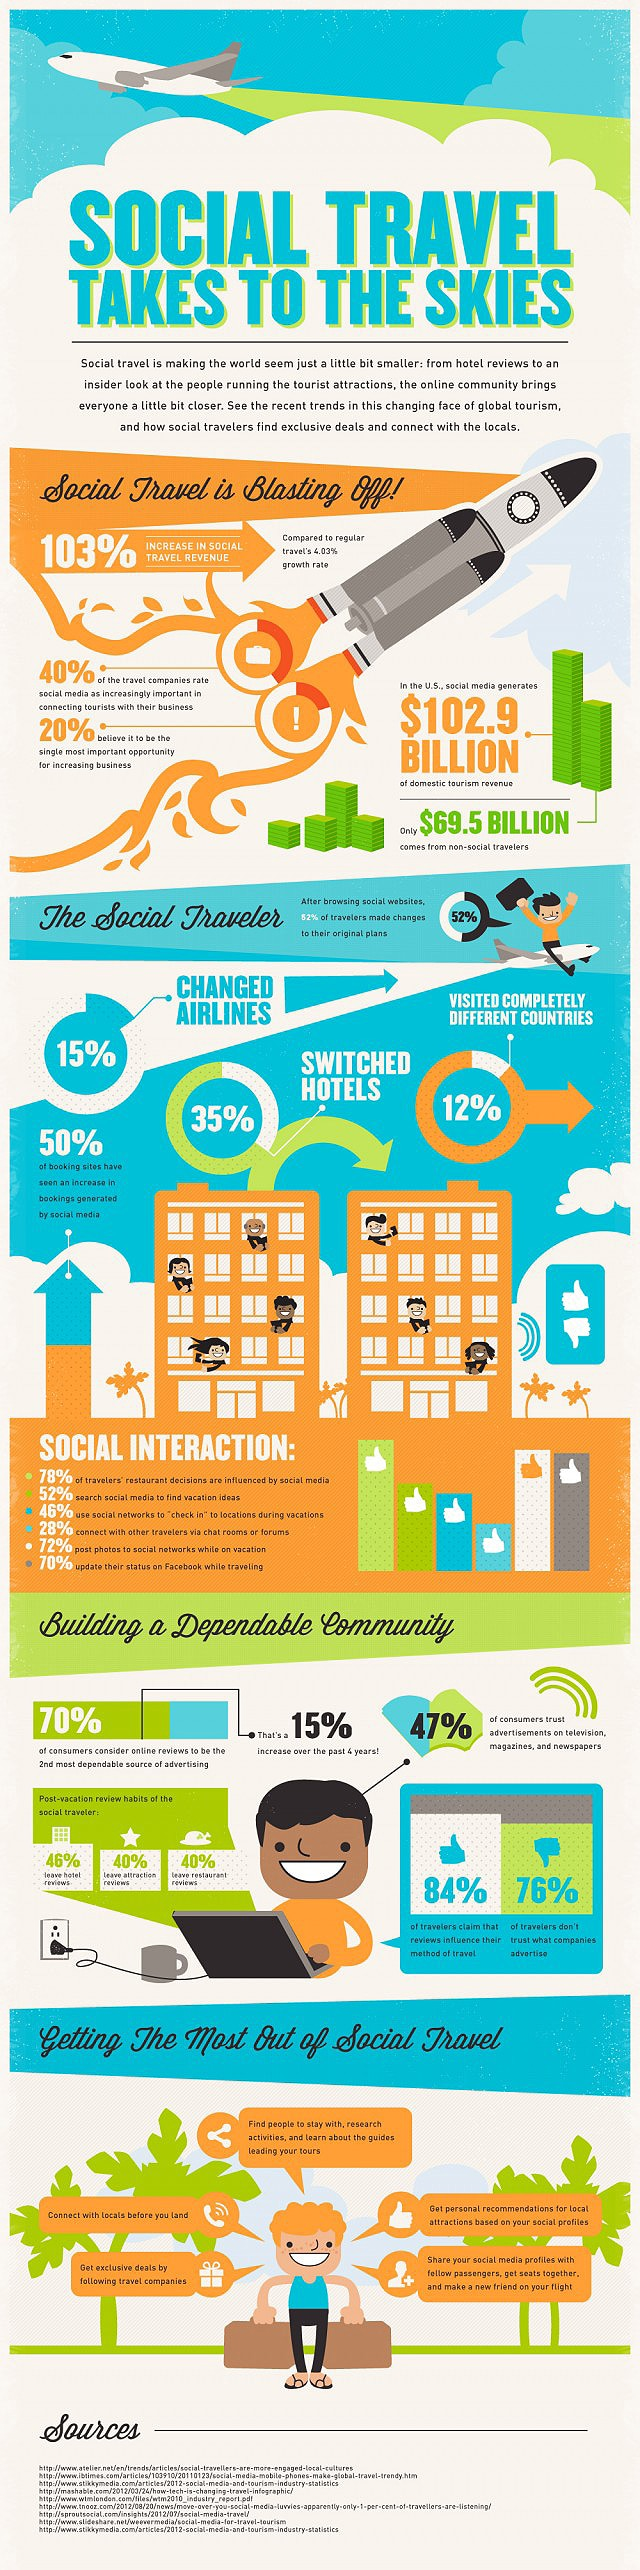 social-media-affects-travel-plans